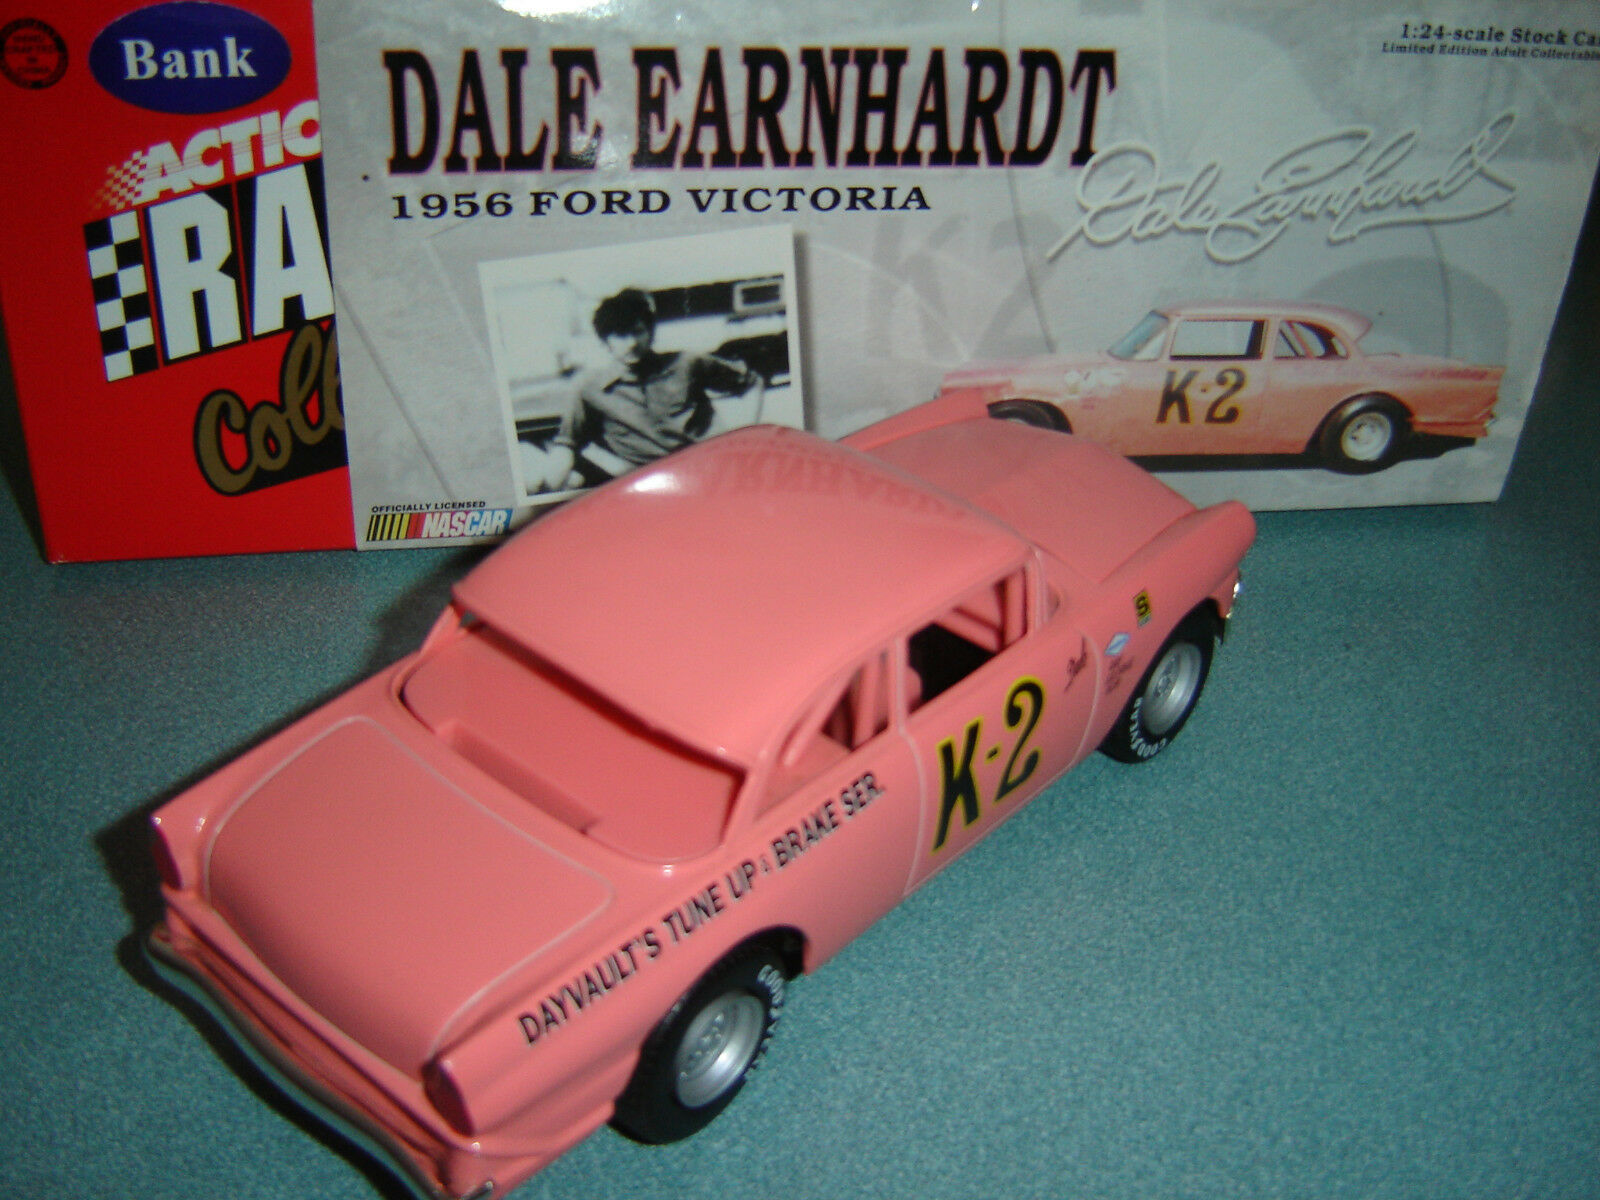 K2 DALE EARNHARDT 1956 DAYVAULT'S TUNE UP FORD VICTORIA ACTION RCCA CWB 1 24